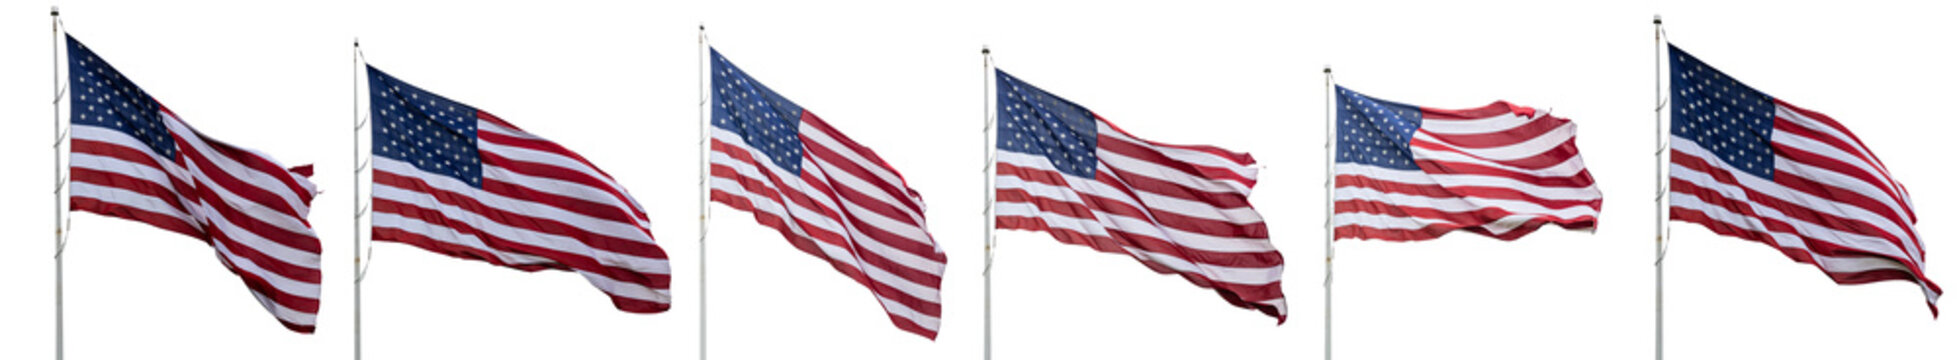 United States flags waving isolated on white background, collage, banner.